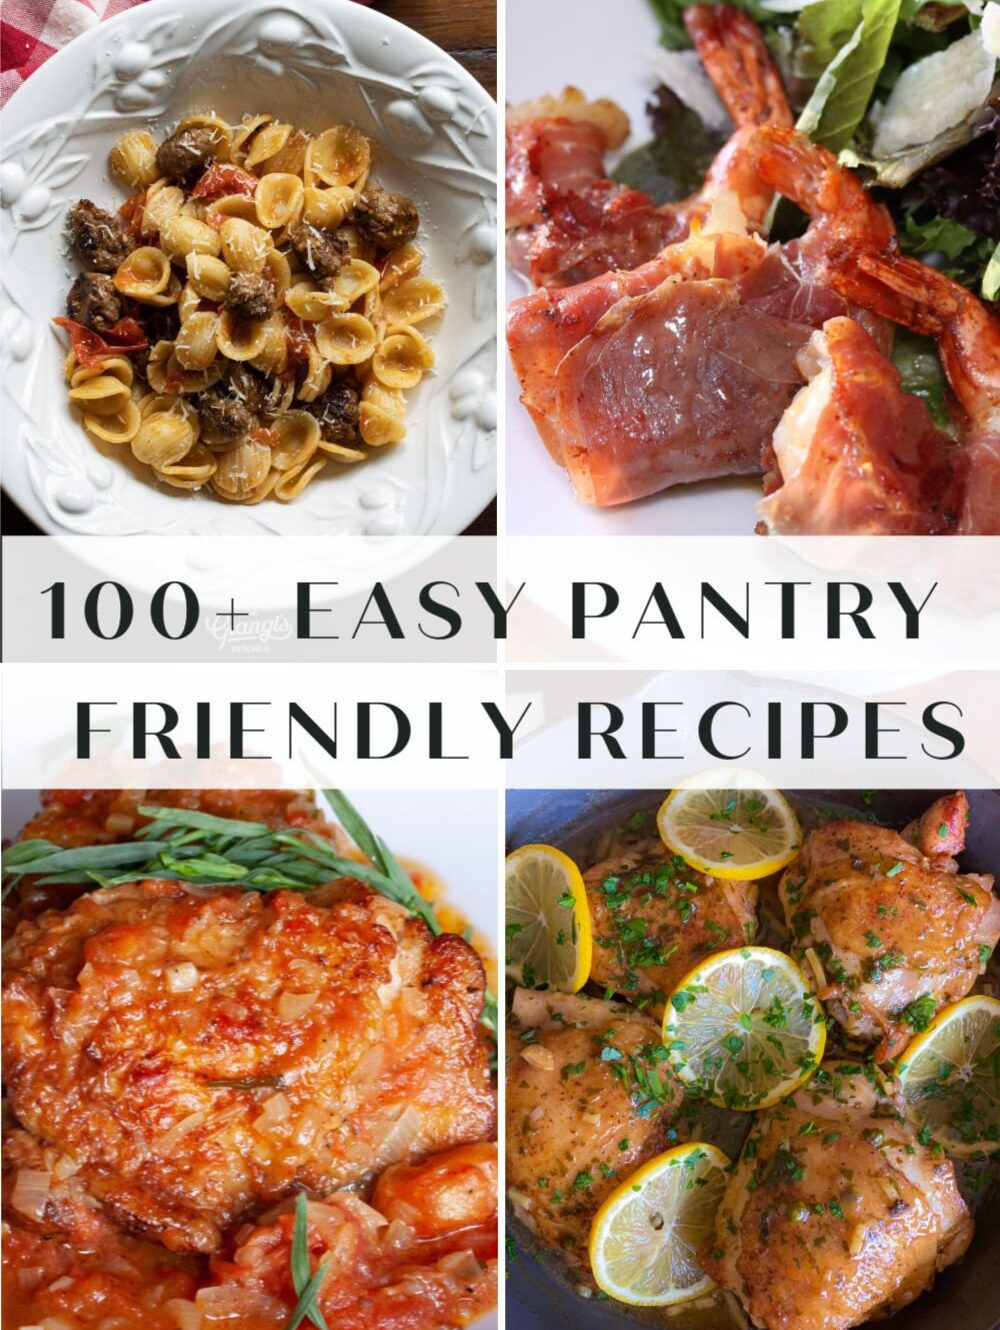 100+ Easy Pantry Friendly recipes